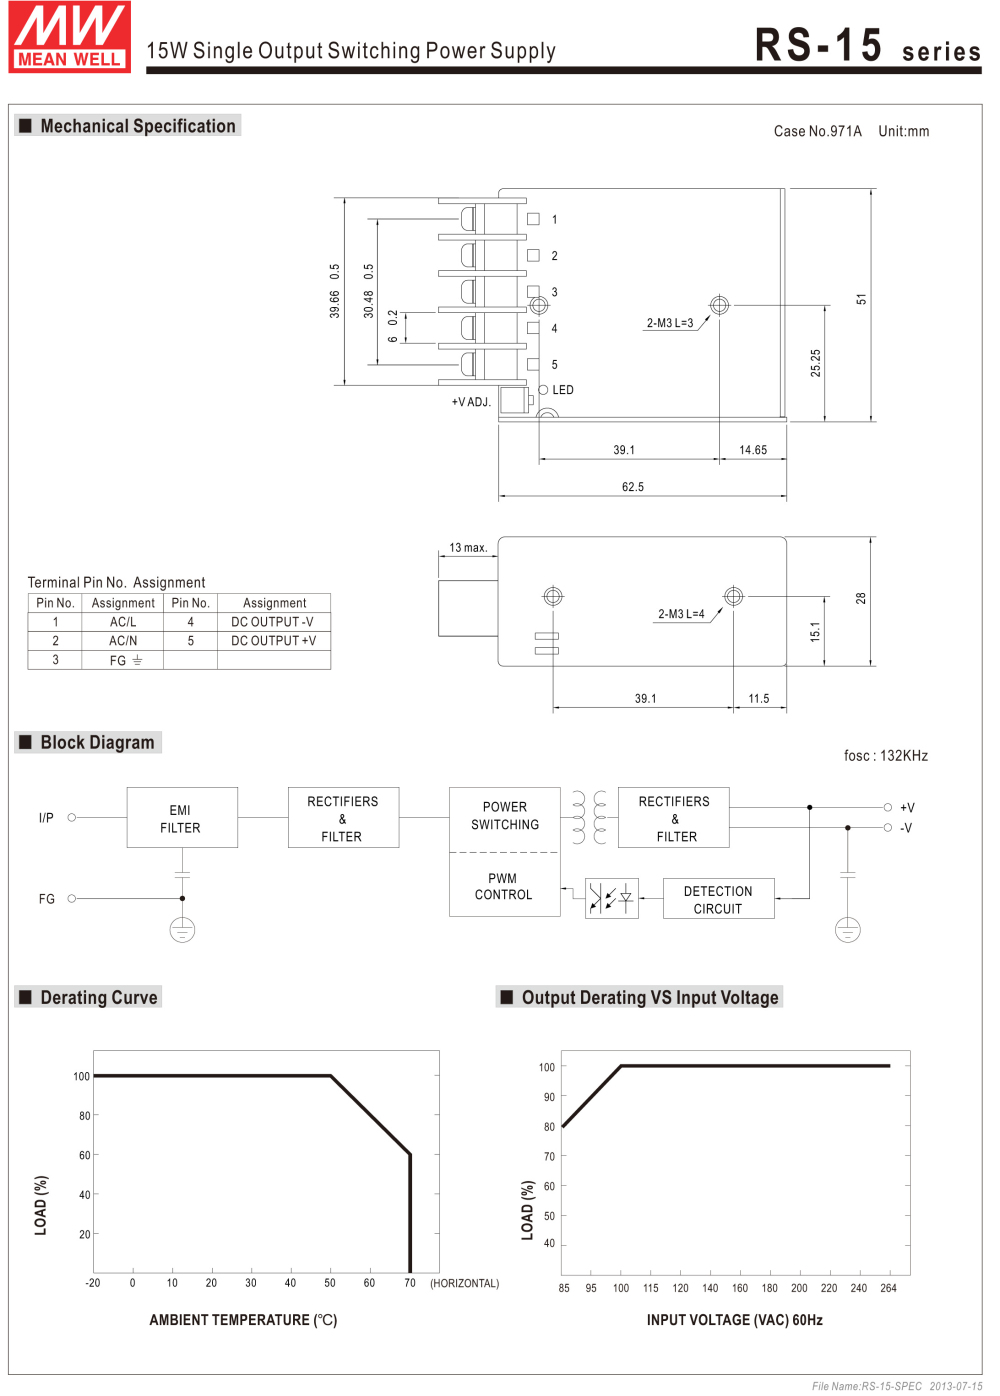 MEANWELL_POWER_SUPPLY_HOT_SELLING_RS_15_5_3